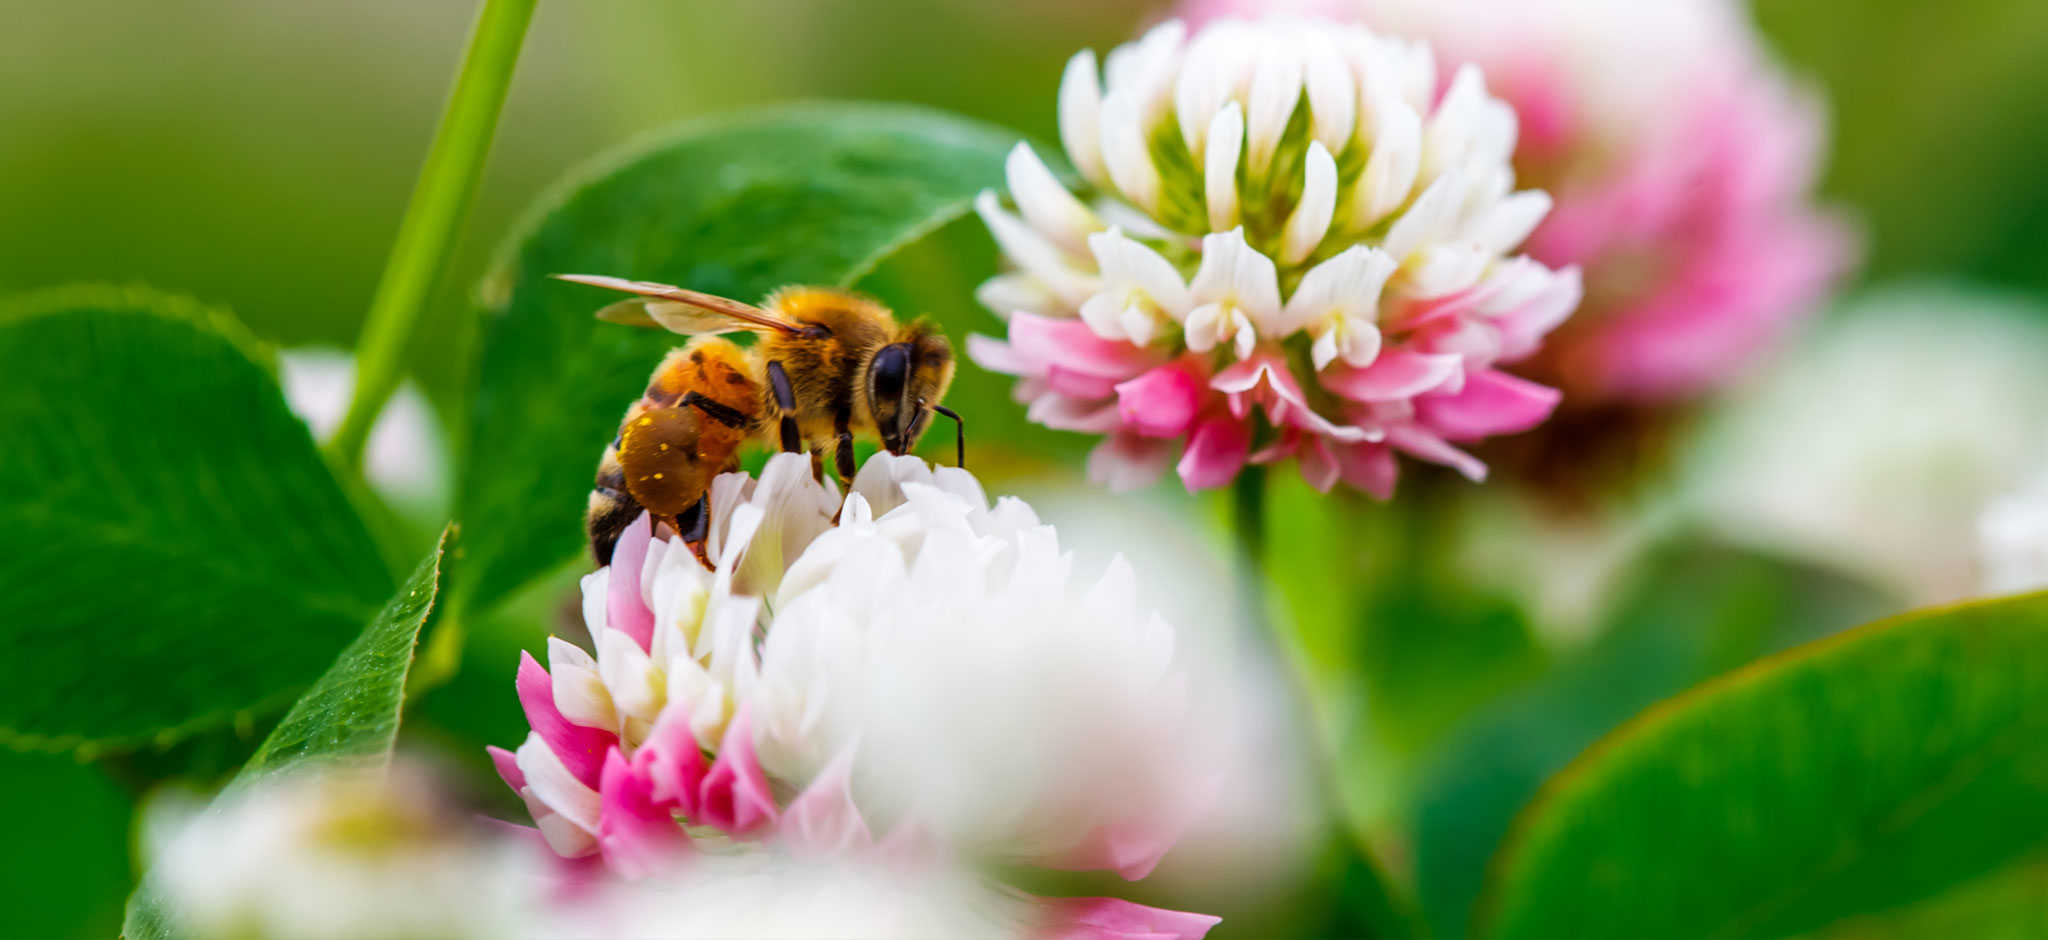 Image of a bee pollinating a colourful flower